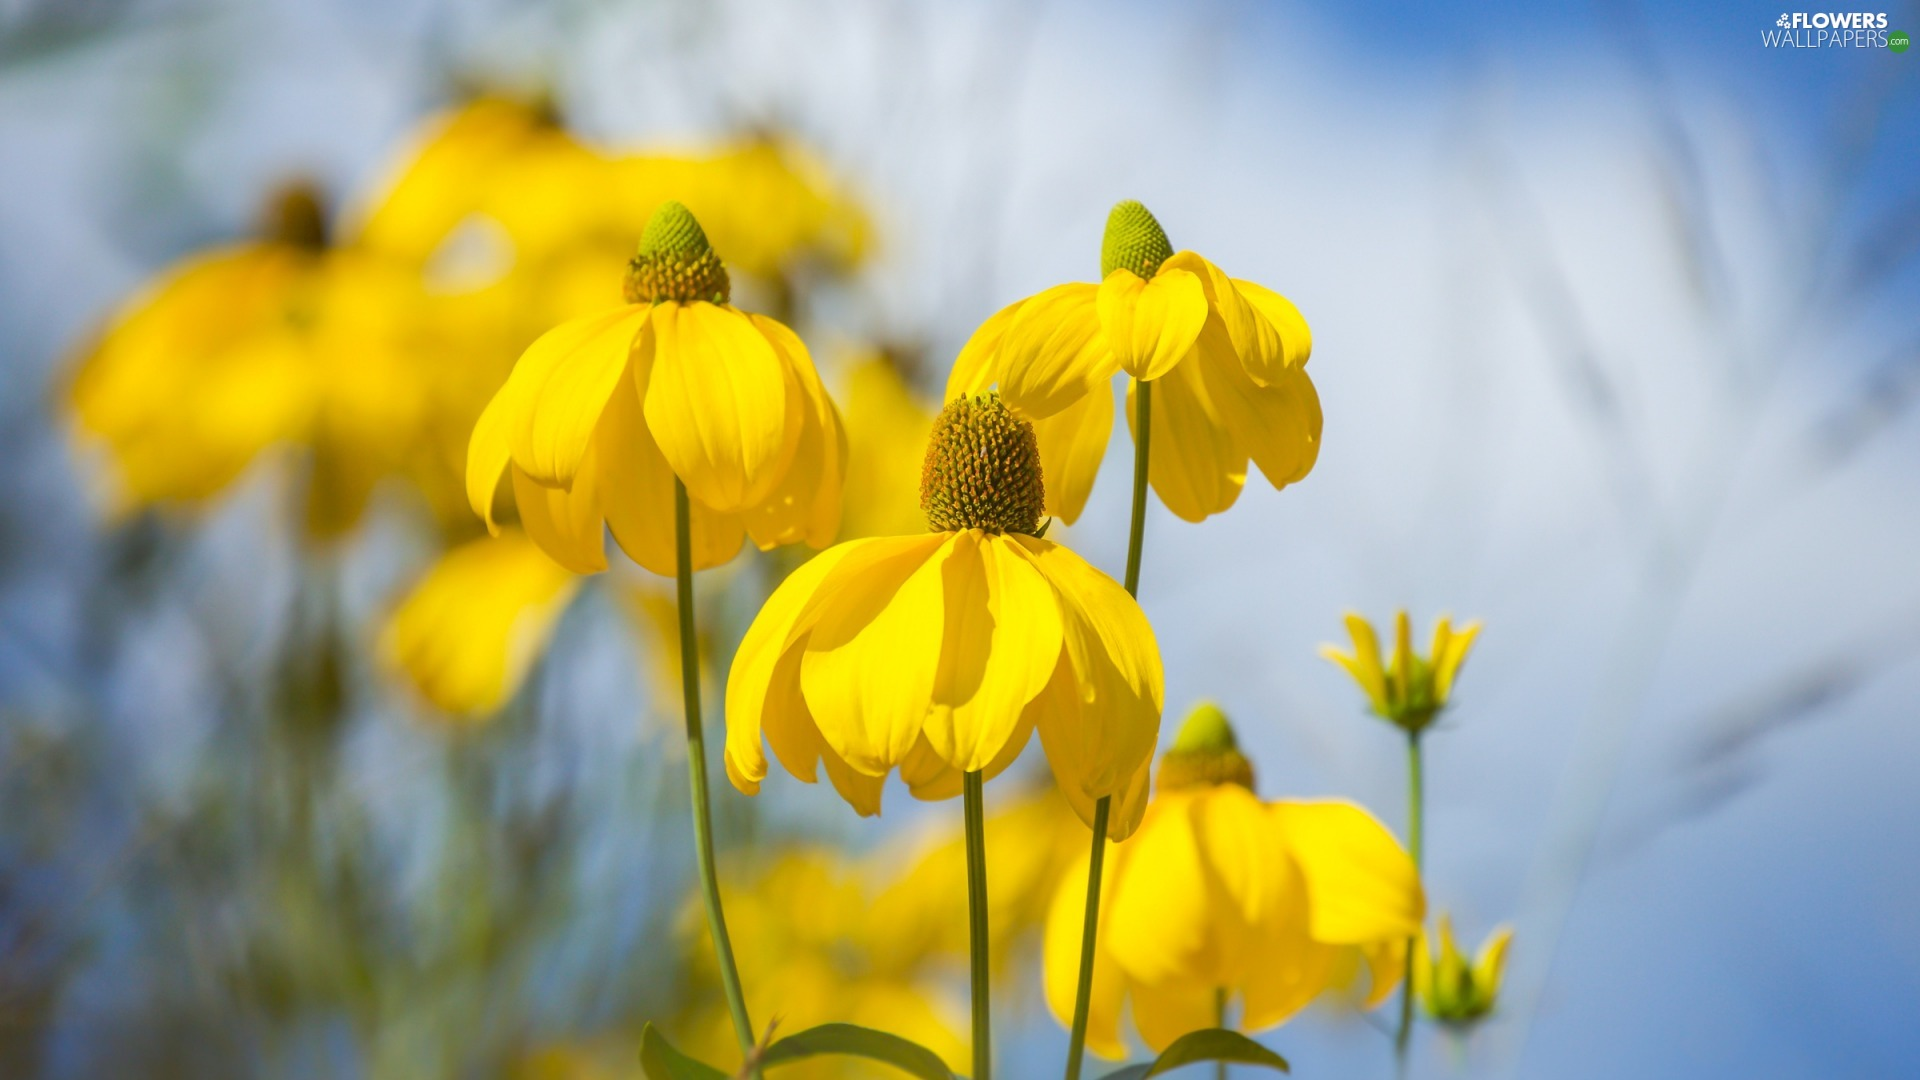 Yellow, Rudbeckia, blurry background, Flowers